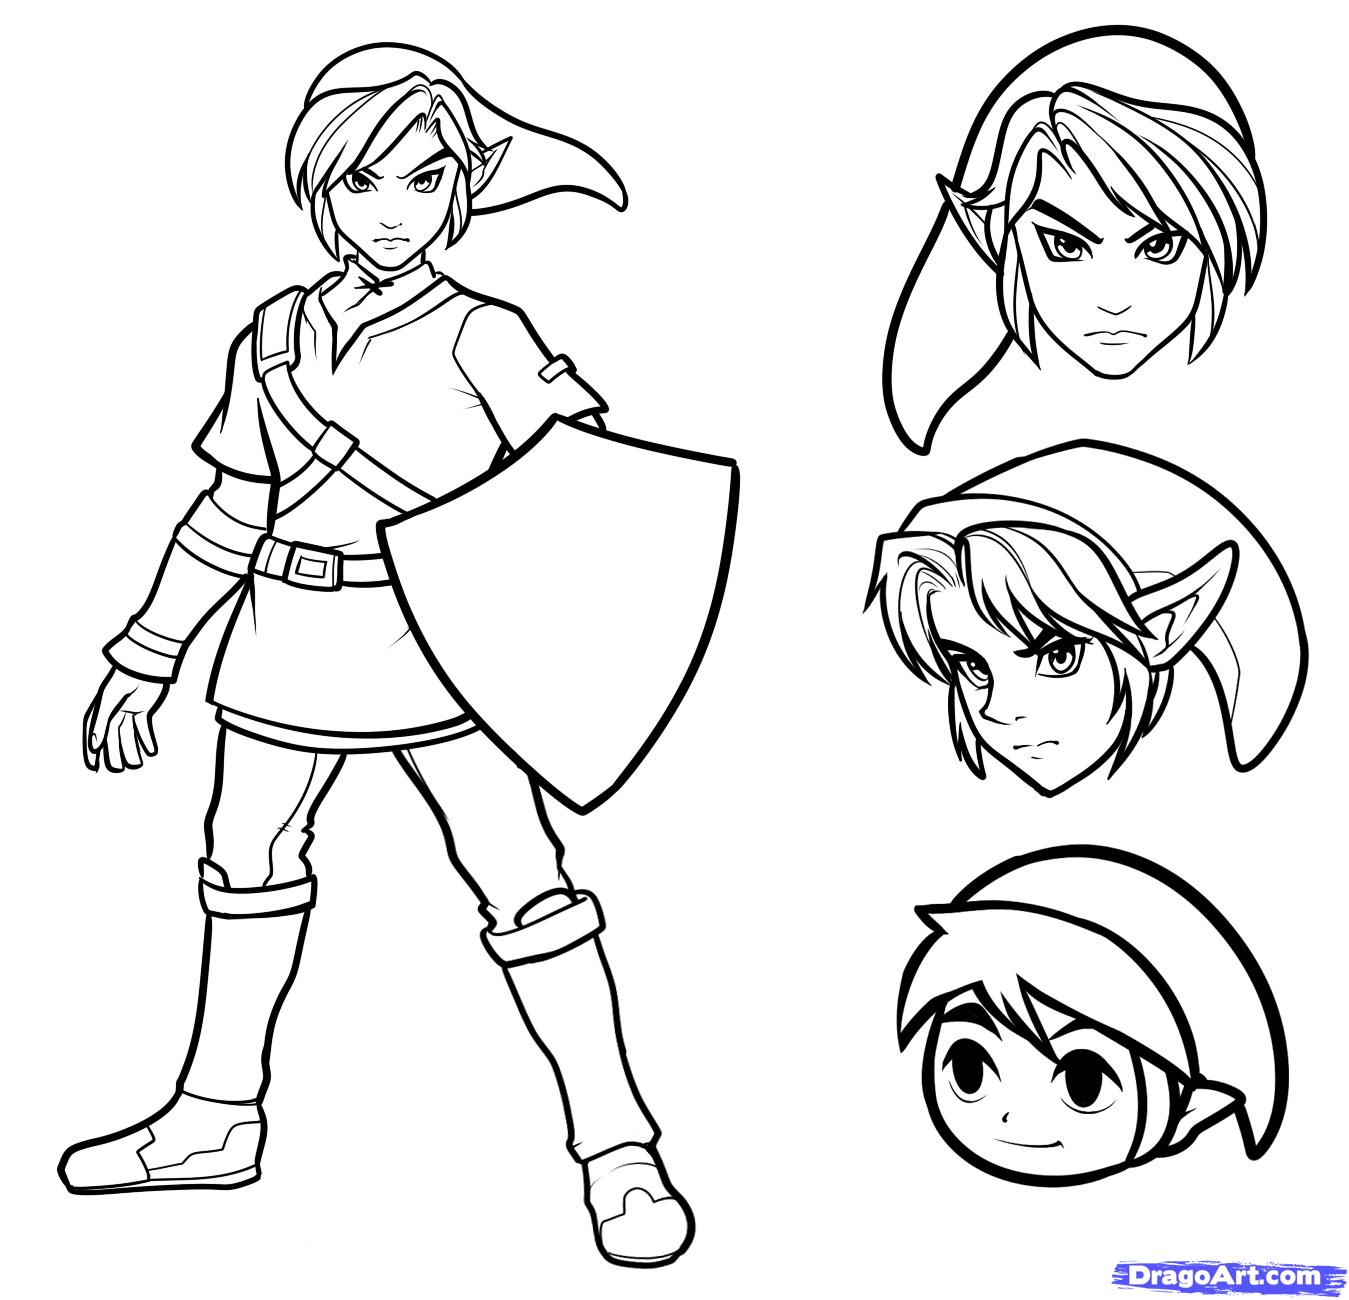 Video Games Drawing At Getdrawings Com Free For Personal